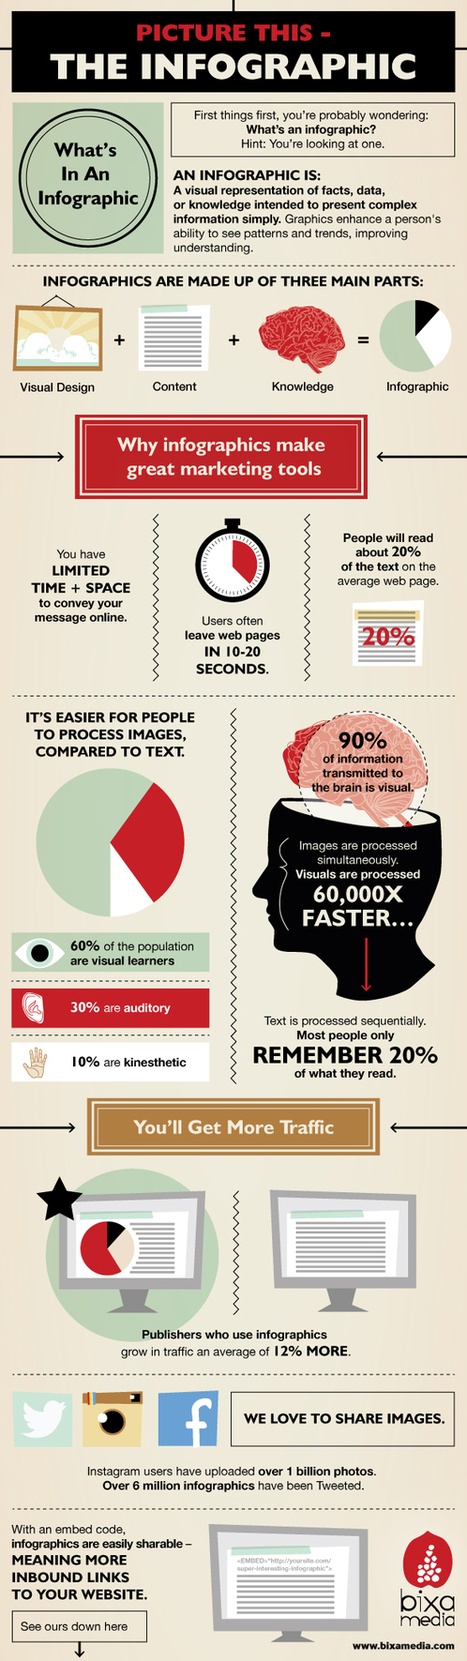 5 Reason Why Infographics Make Great Marketing Tools | digital marketing strategy | Scoop.it